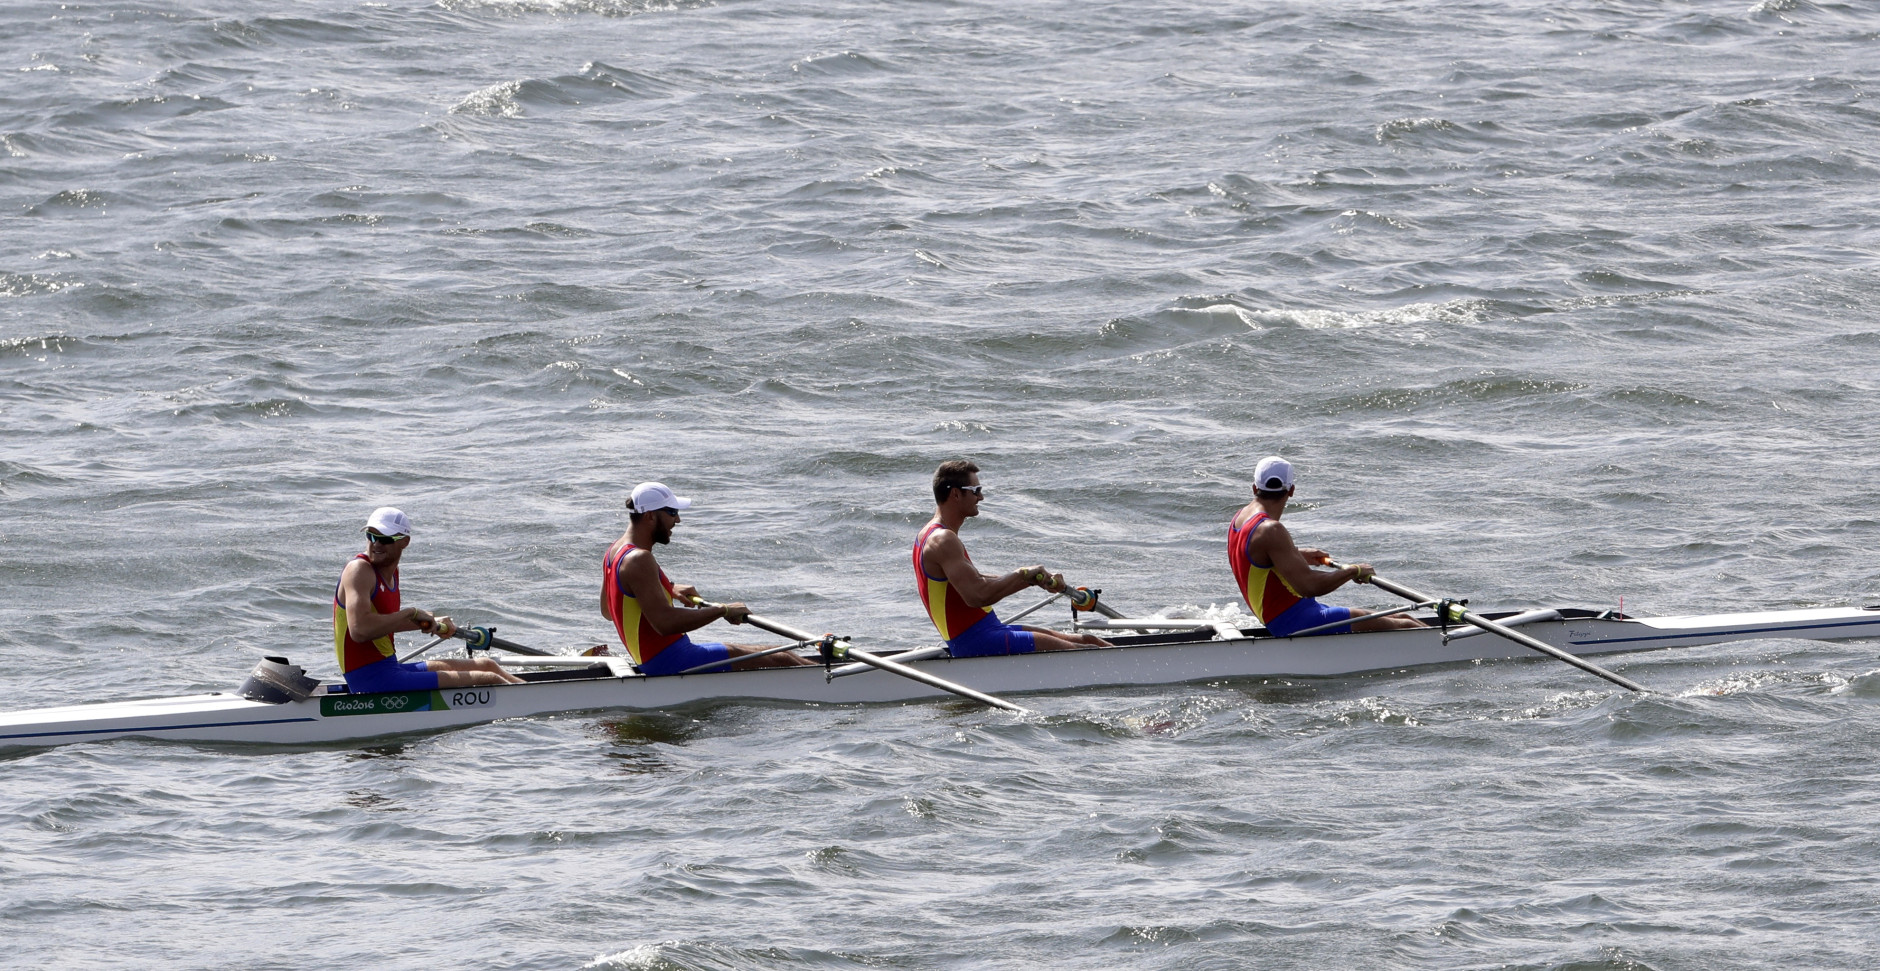 A team from Romania who were training return to shore after high winds postponed their competition for the day at the 2016 Summer Olympics in Rio de Janeiro, Brazil, Sunday, Aug. 7, 2016. (AP Photo/Matt York)